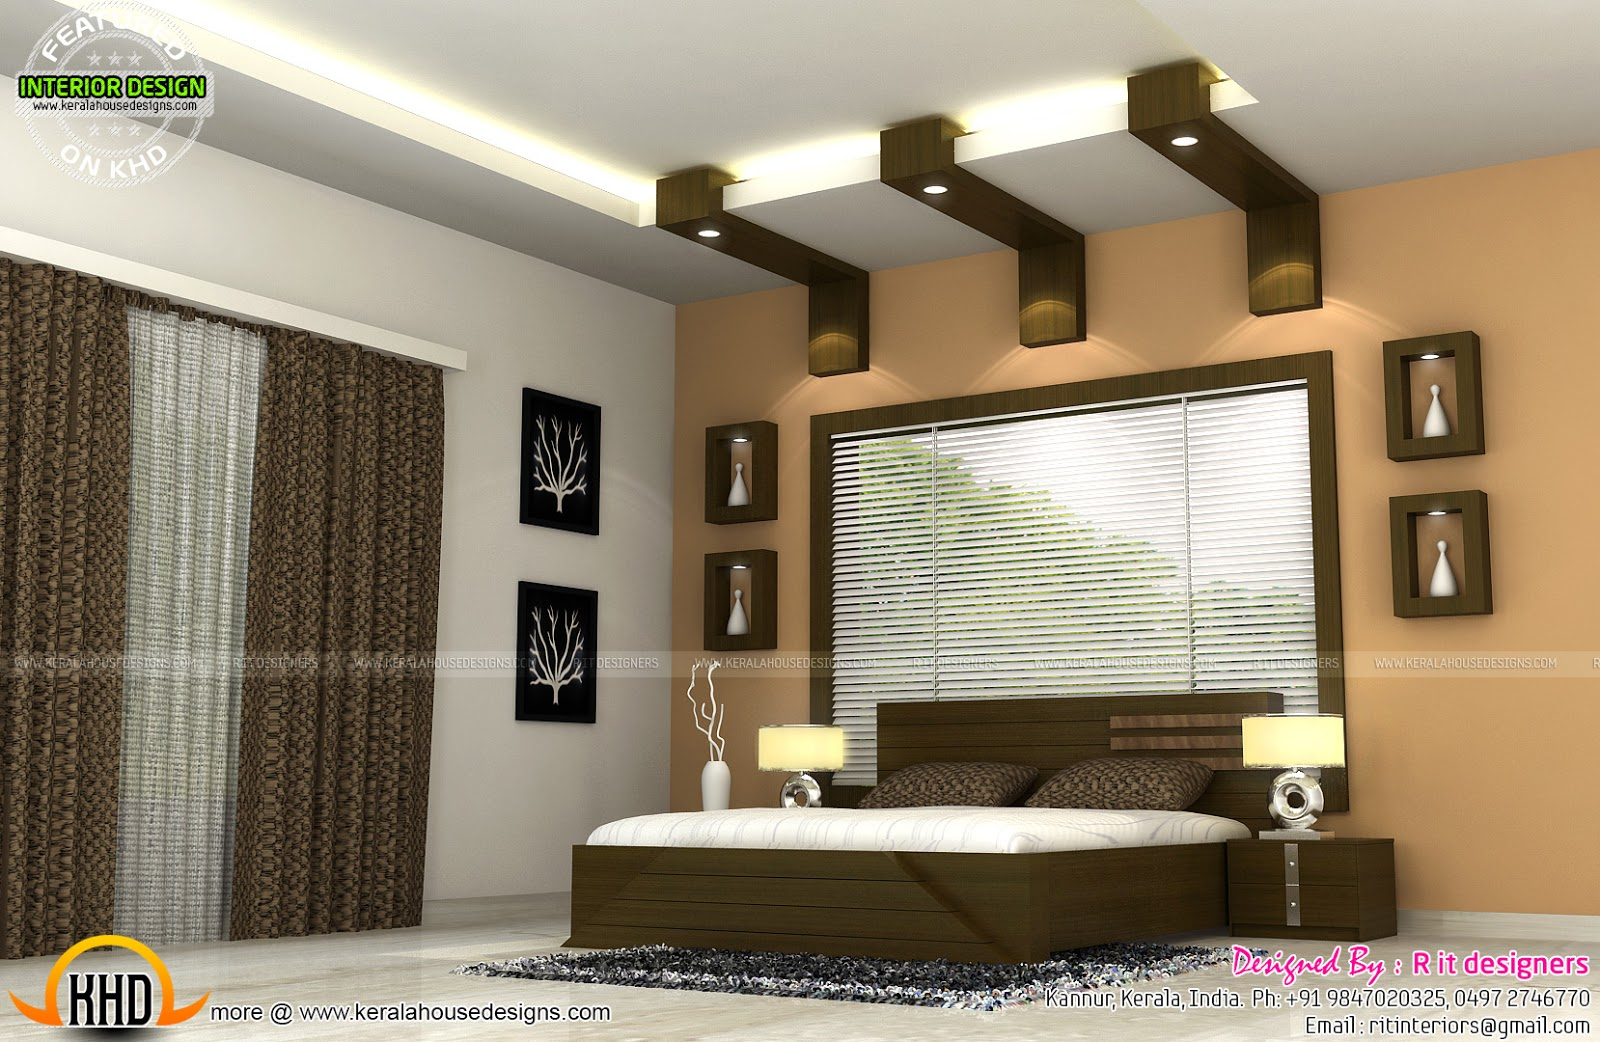 Interiors of bedrooms and kitchen kerala home design and for Interior designs new homes